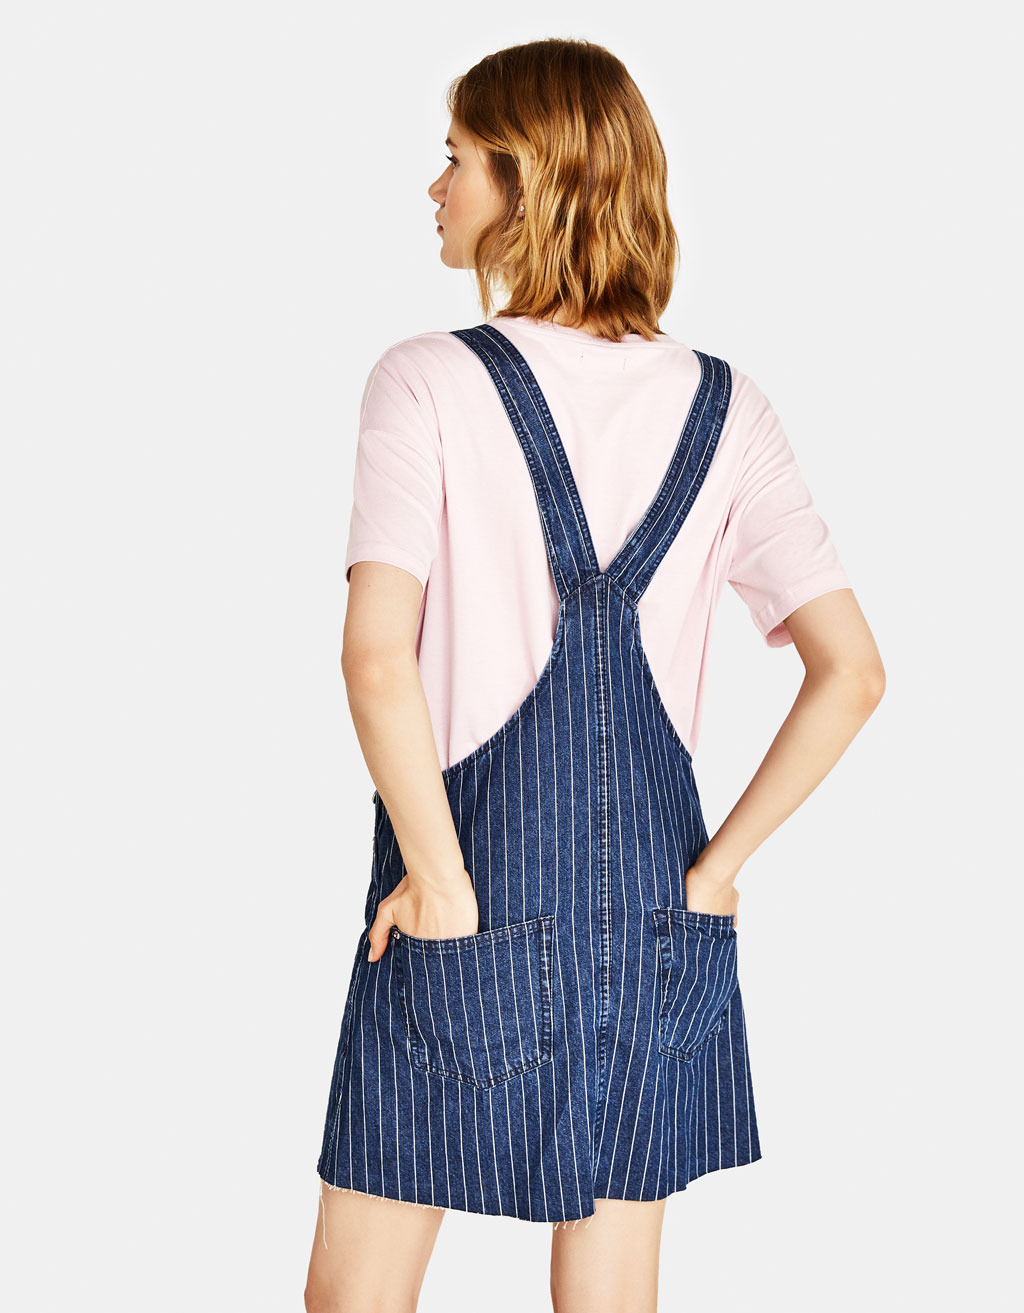 classic chic attractivedesigns wide varieties Denim pinafore dress with stripes - Dungarees - Bershka Tunisia